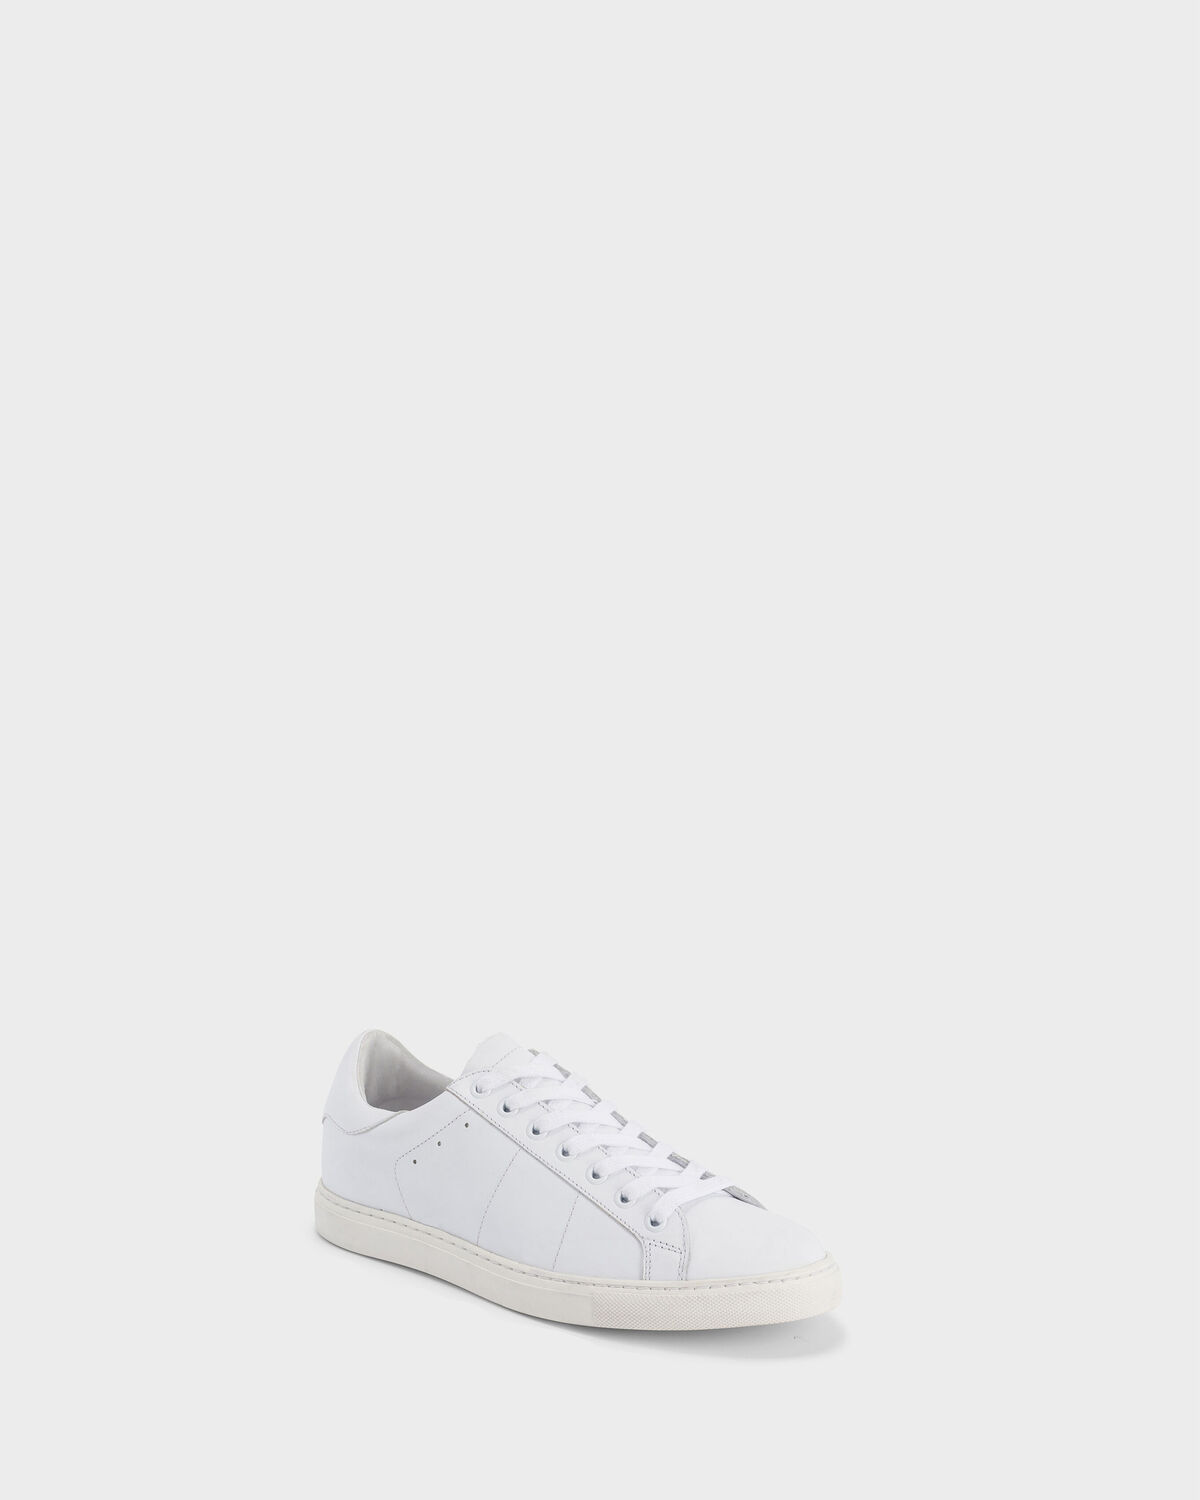 IRO - BASIC SNEAKERS WHITE